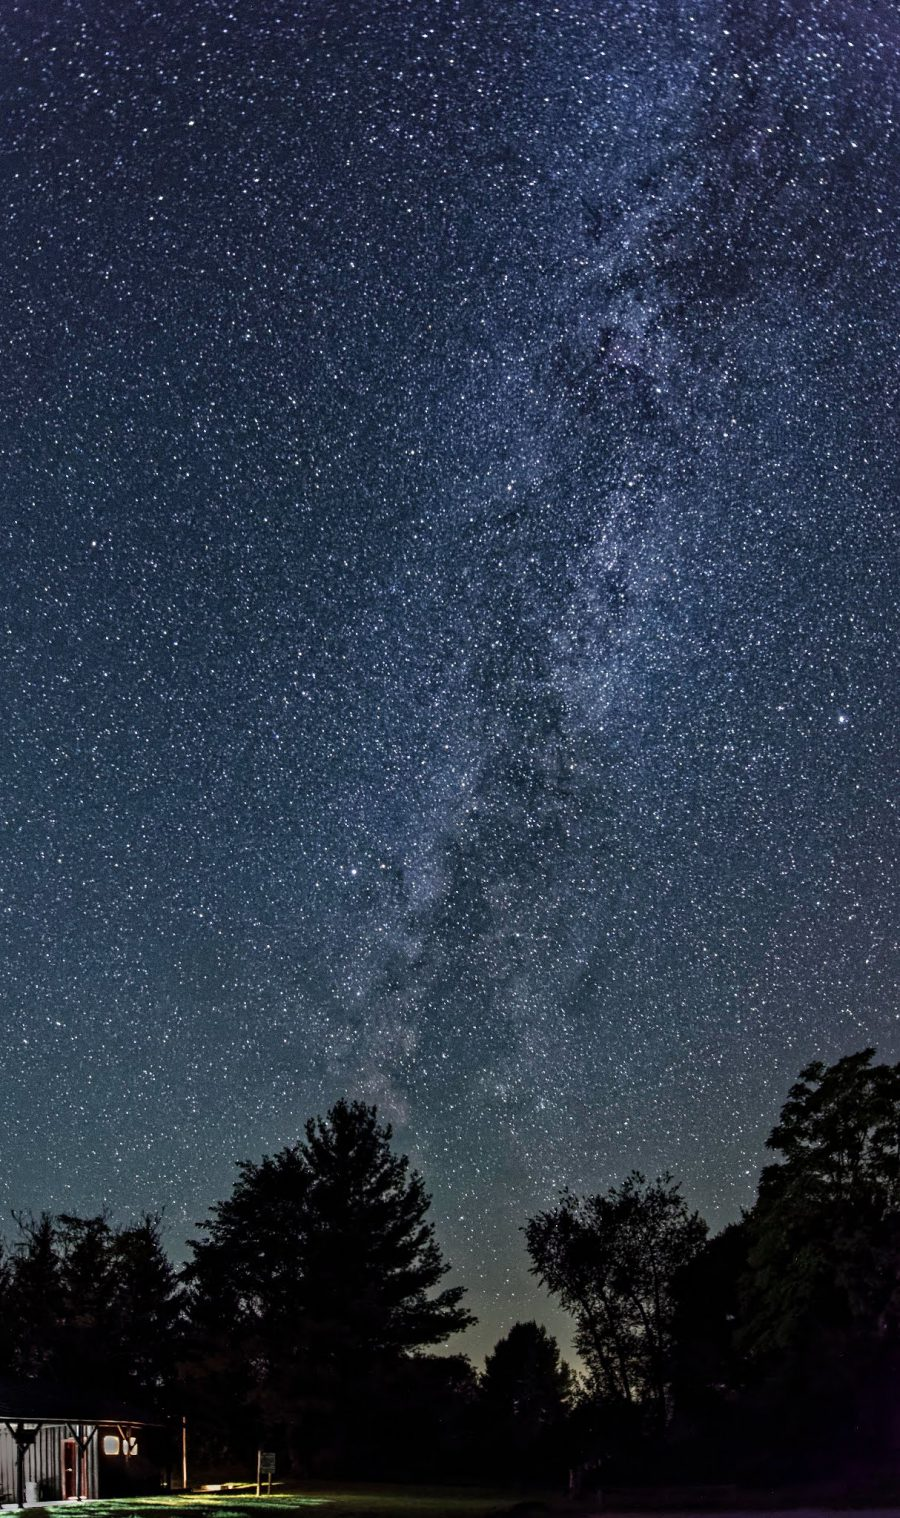 Rappahannock County Park Awarded International Dark Sky Park Designation Image